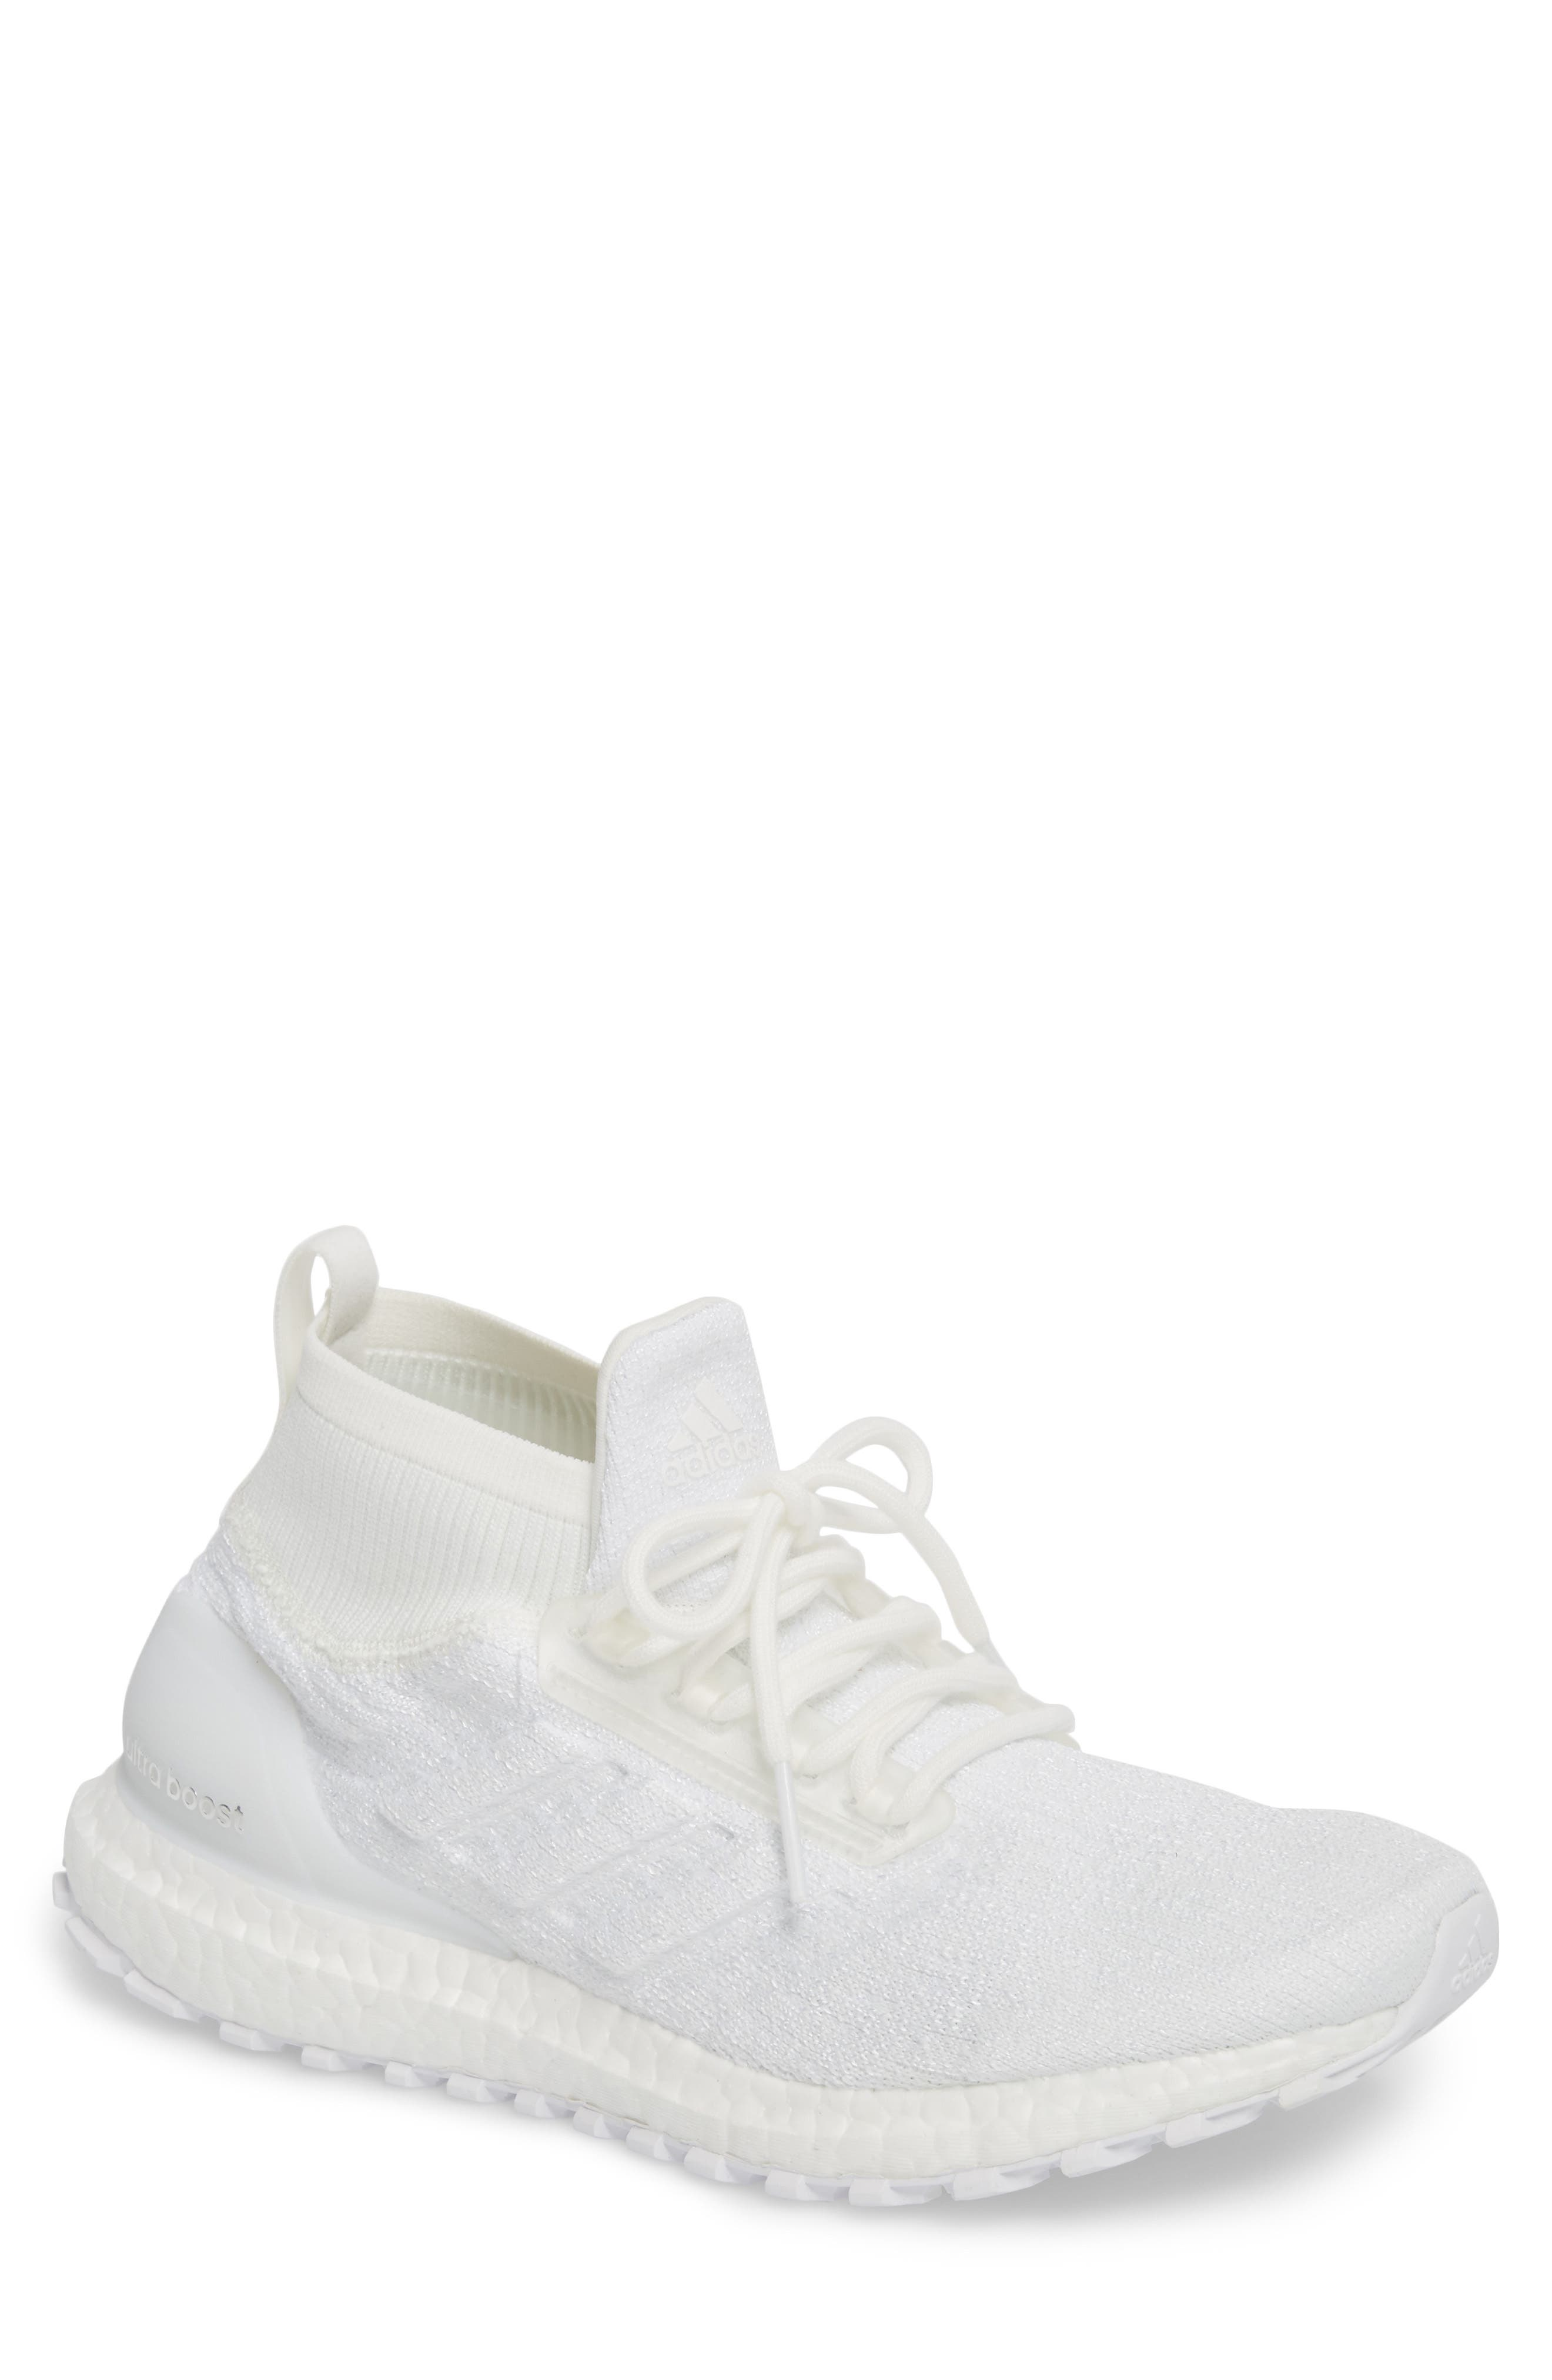 UltraBoost All Terrain Water Resistant Running Shoe,                             Main thumbnail 1, color,                             Non-Dyed White